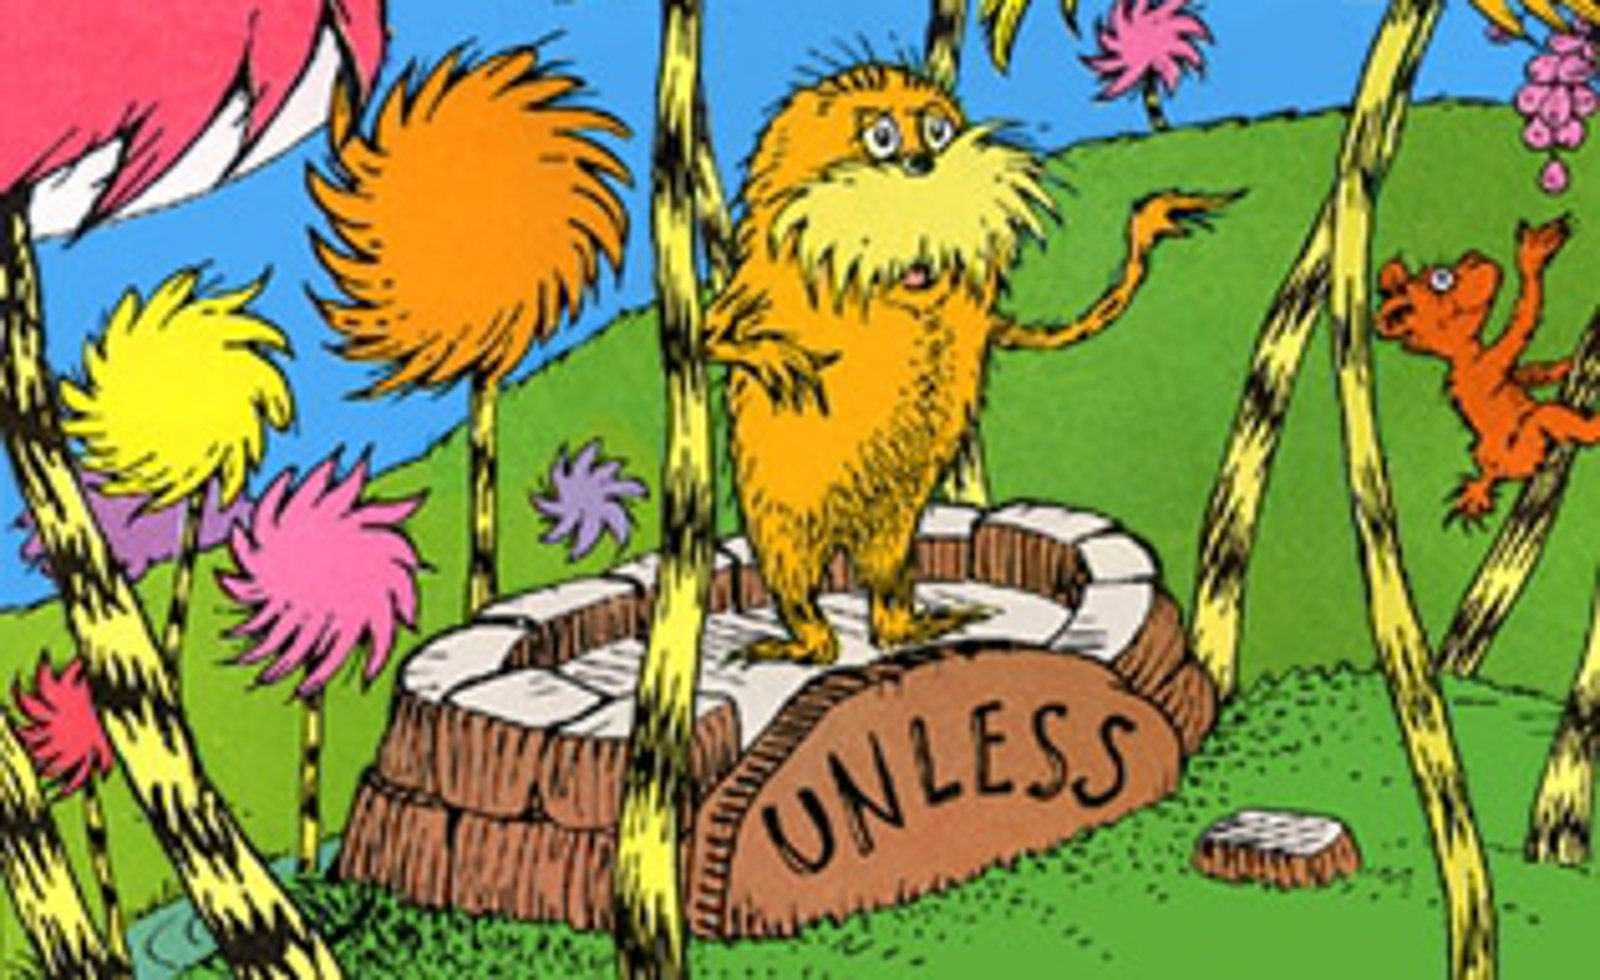 From Dr. Seuss's famous book, the Lorax, who speaks for the trees. Photo: One Green Planet